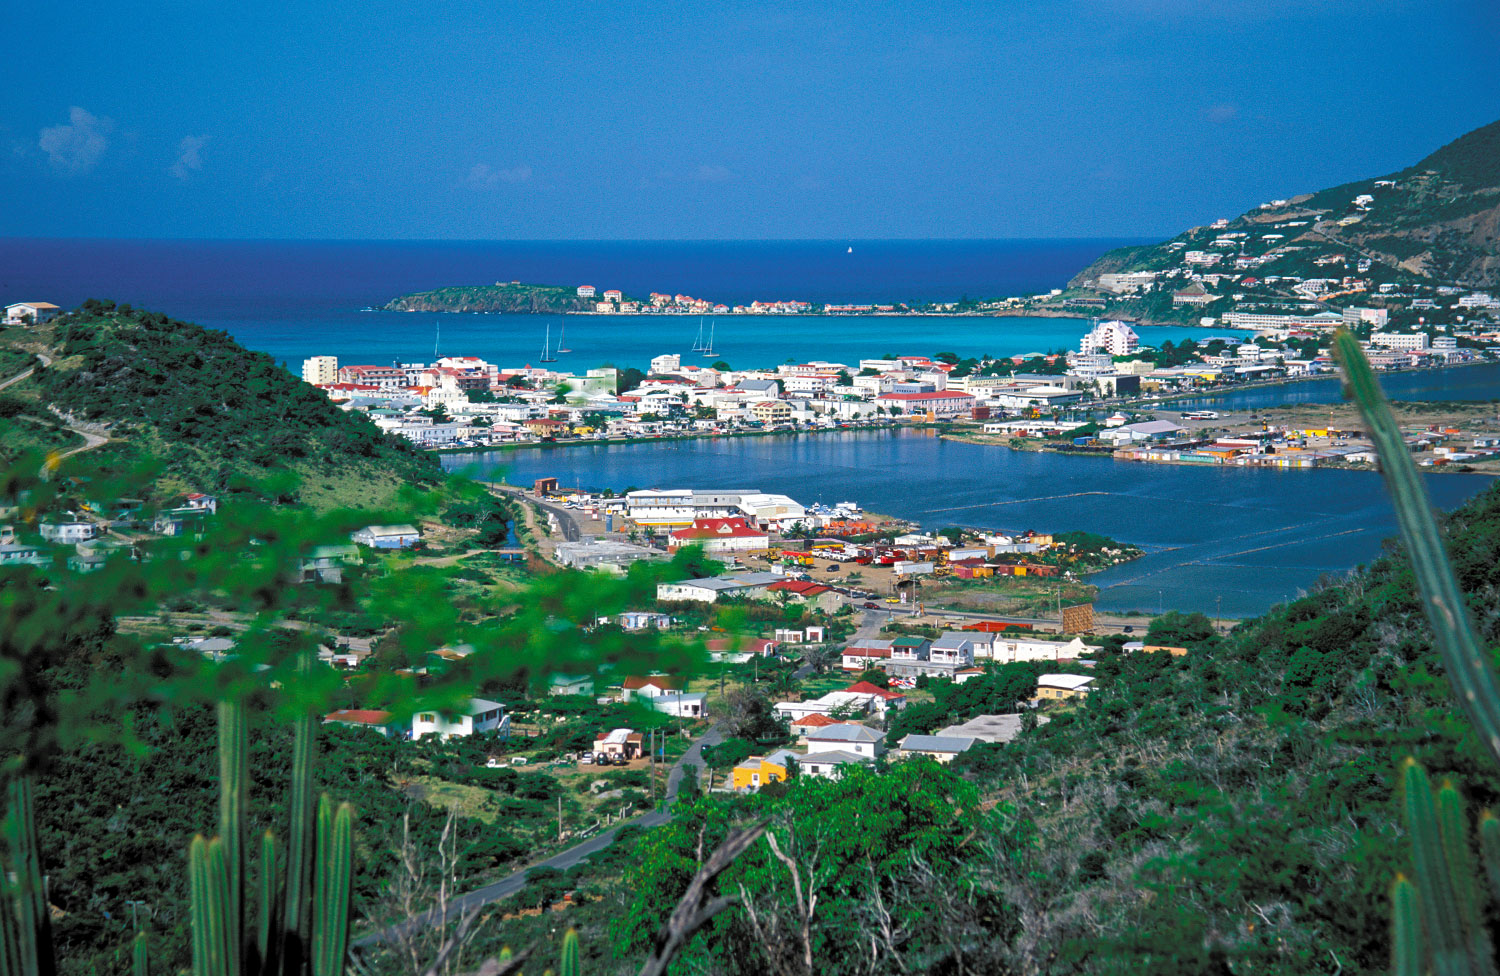 Philipsburg sits on a sandspit between the Salt Pond and Great Bay. Photograph by Donald Nausbaum